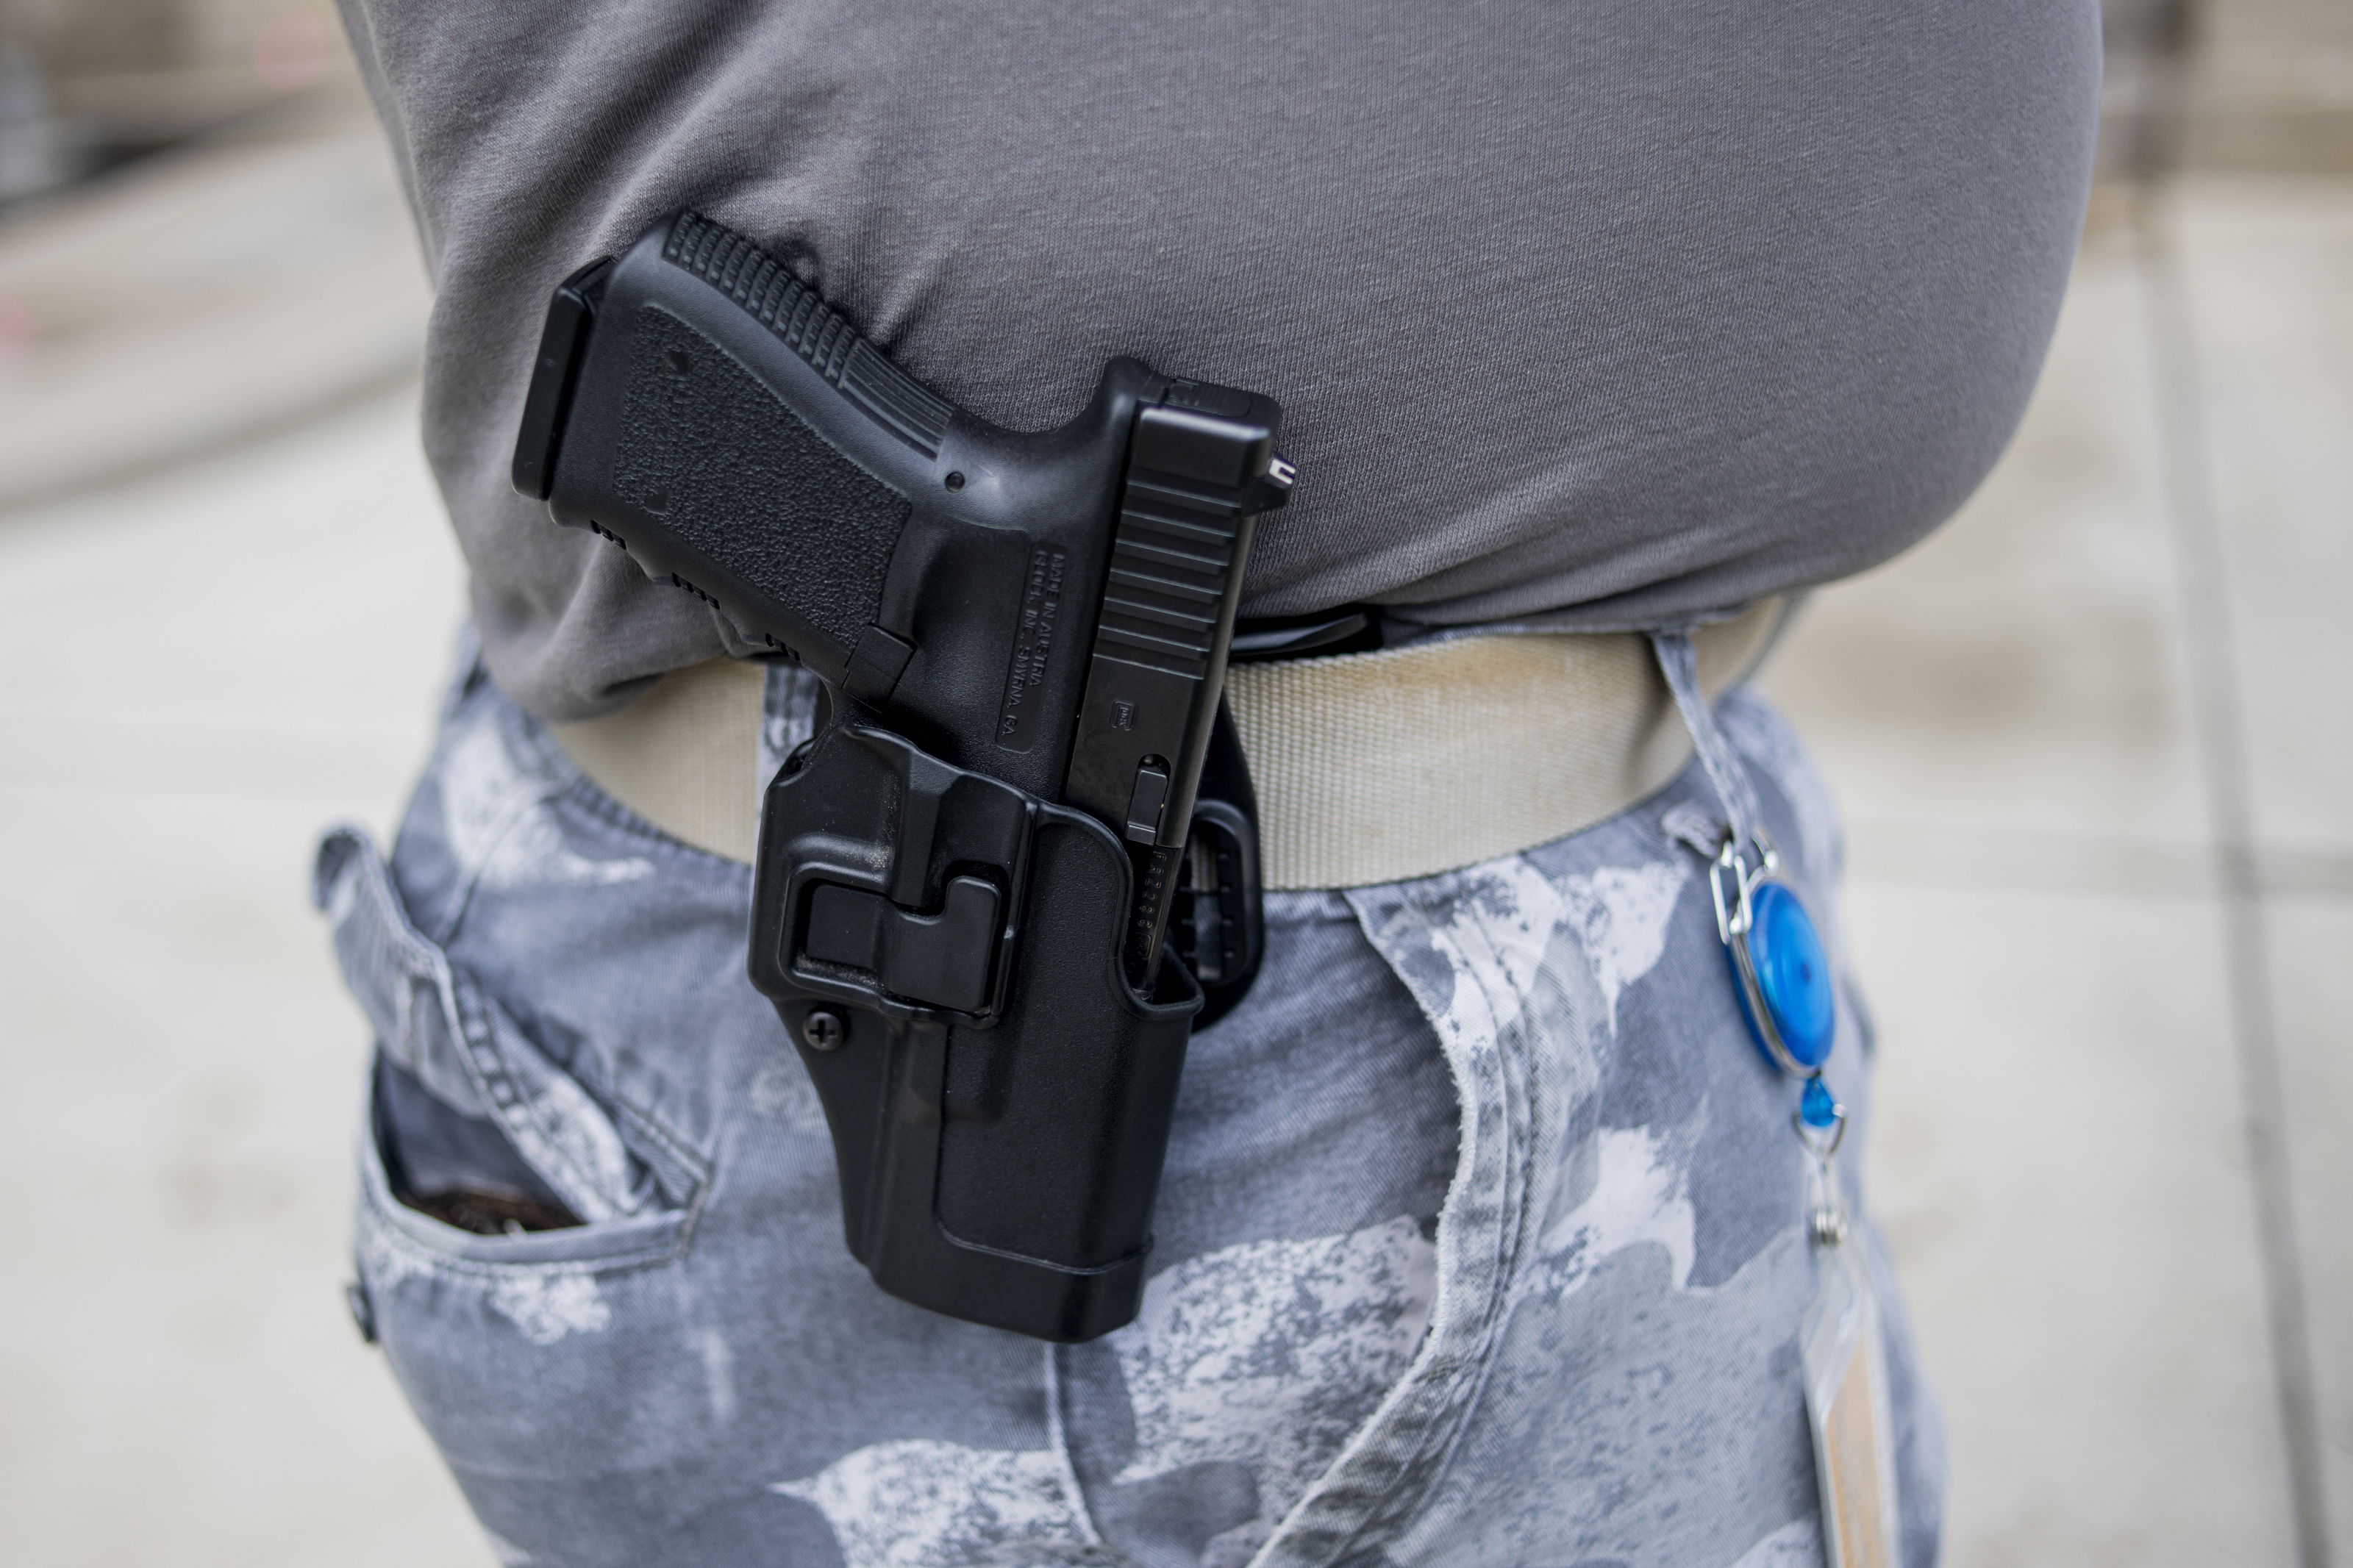 Michigan House bills would make CPLs optional, allow gun owners to carry in gun-free zones